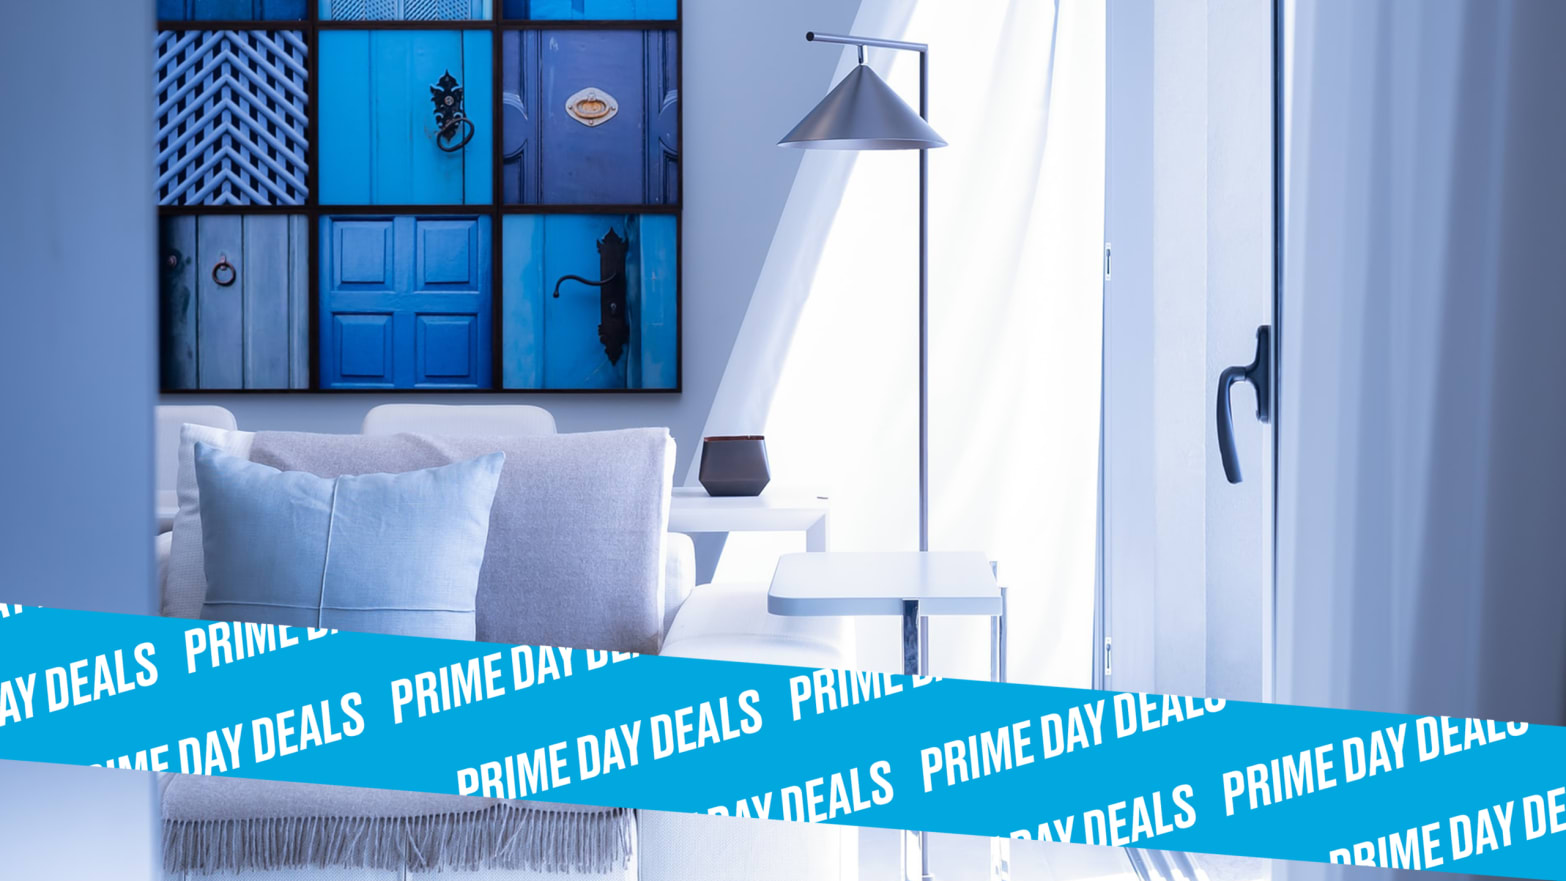 Save Hundreds on More Than 50 Top Brand Smart Home Devices from NETGEAR to August